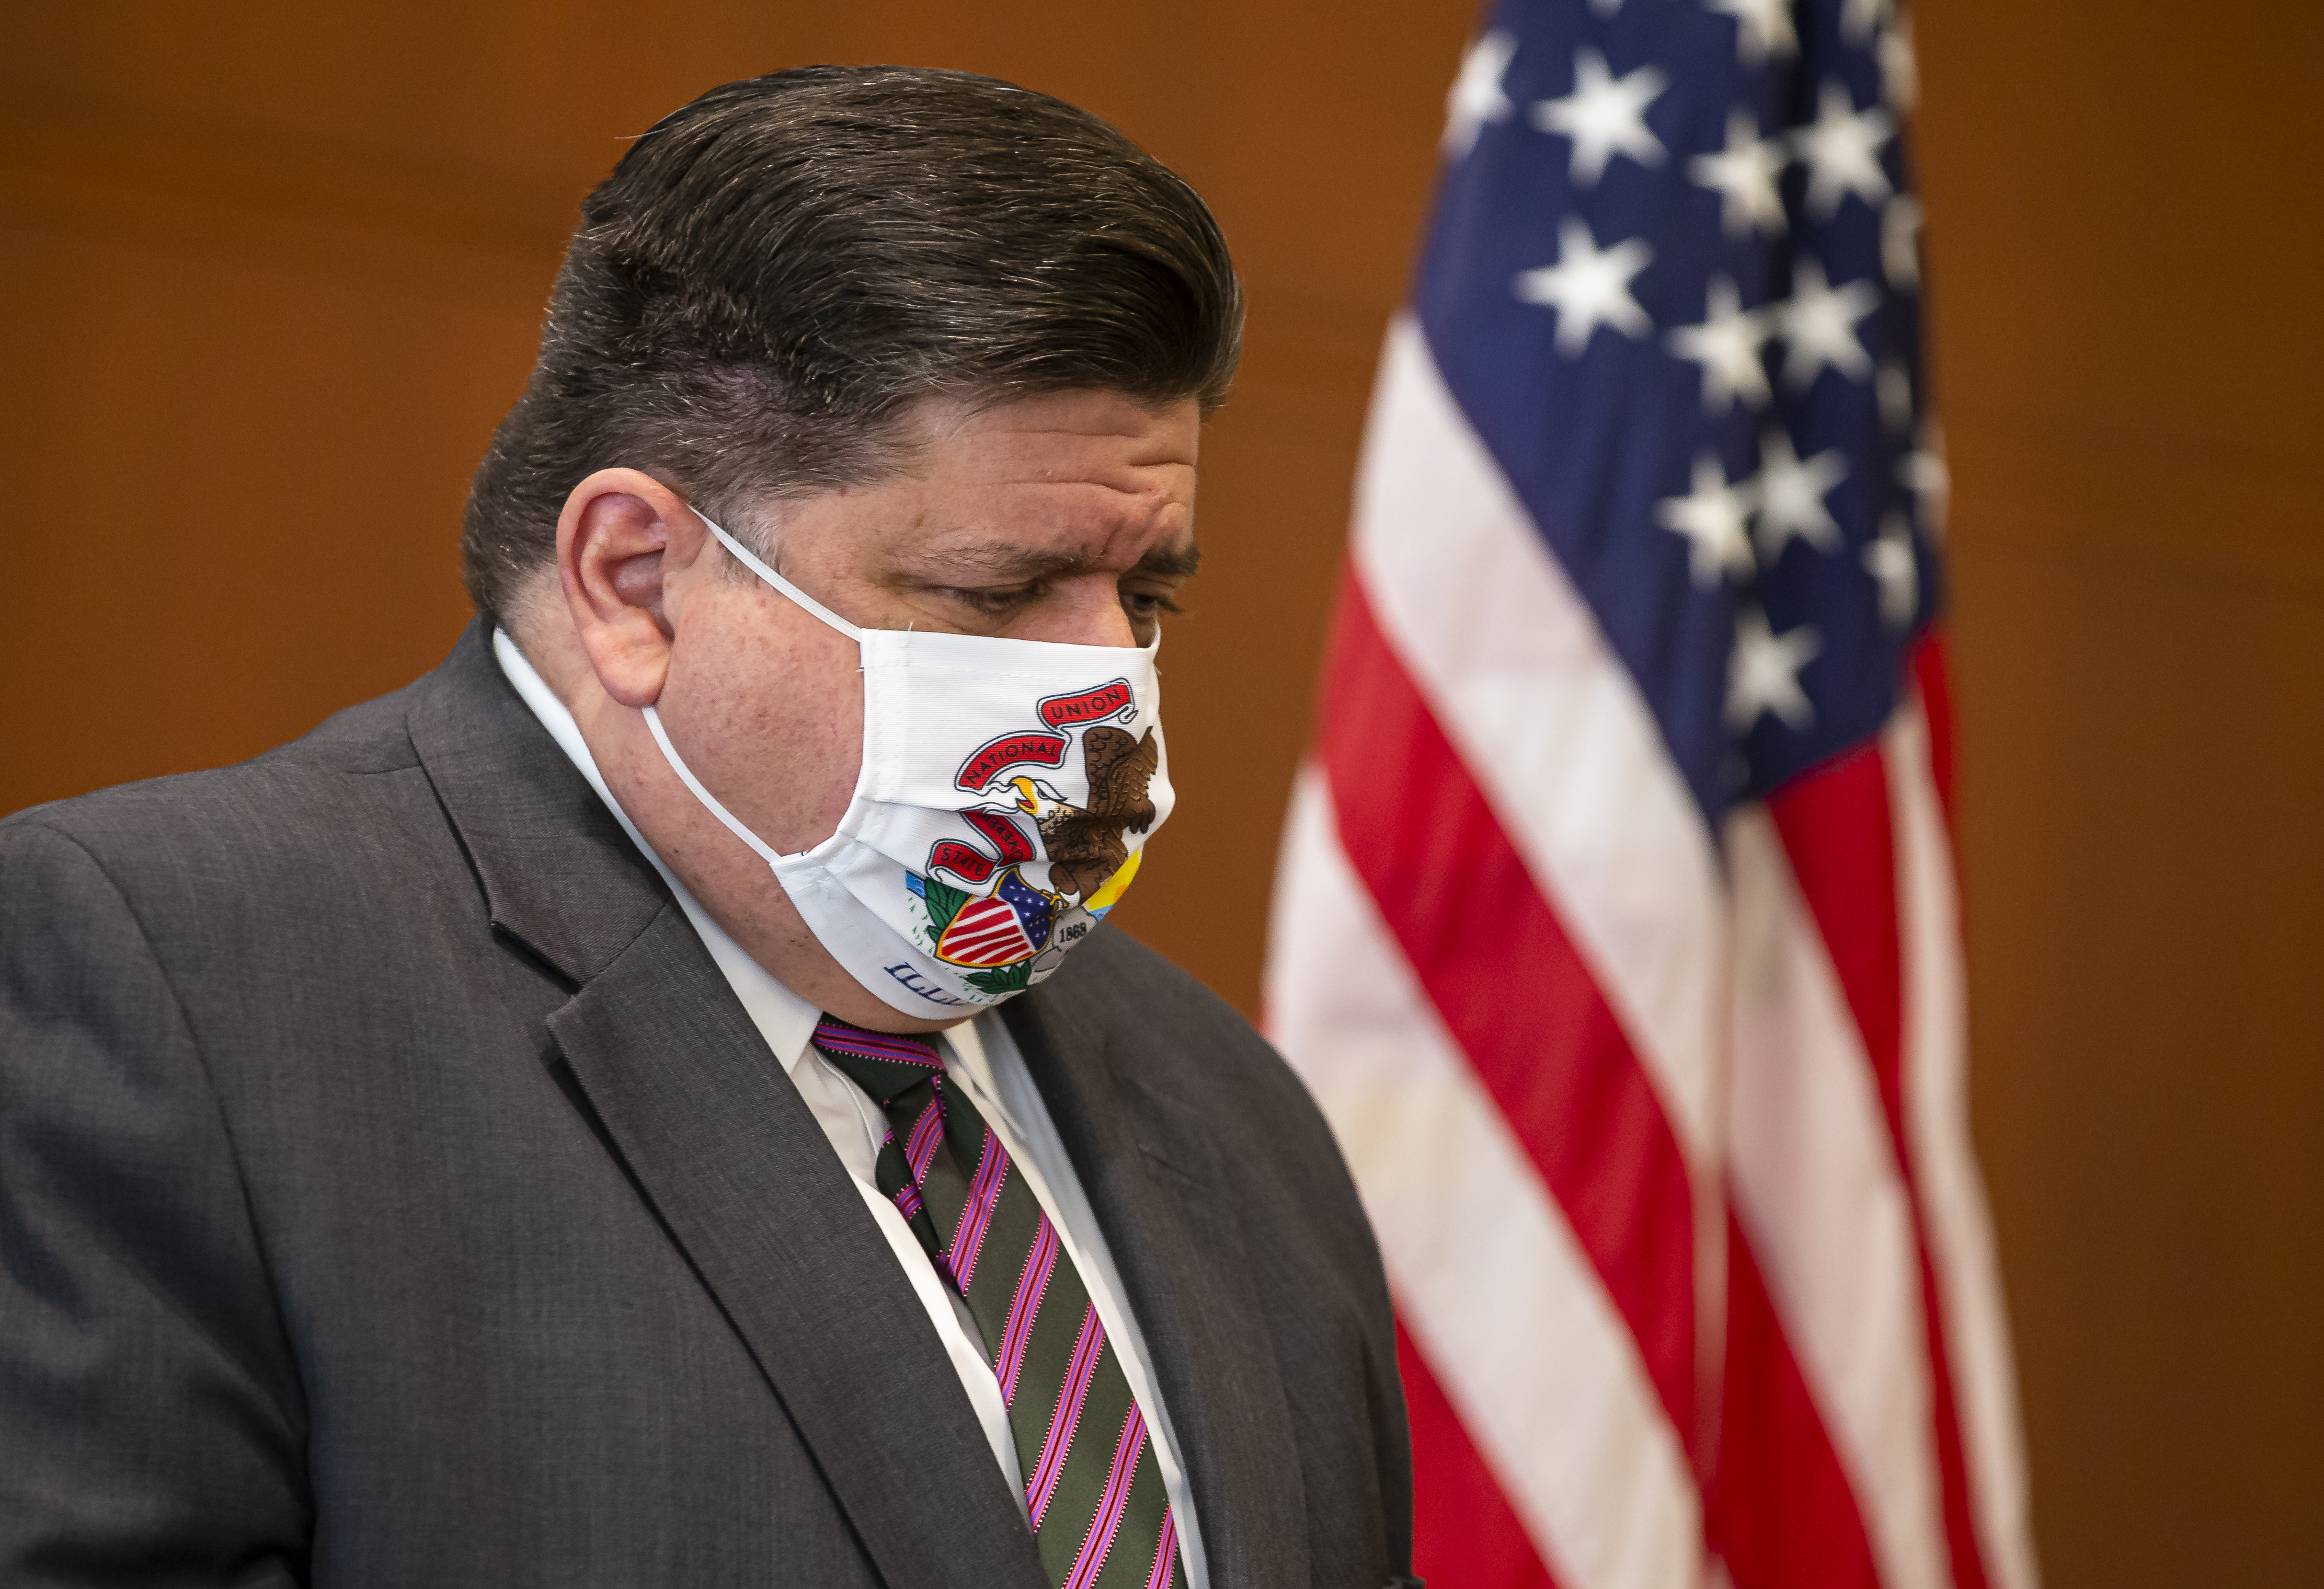 Gov. J.B. Pritzker pictured at a Sept. 21 press conference in Springfield.